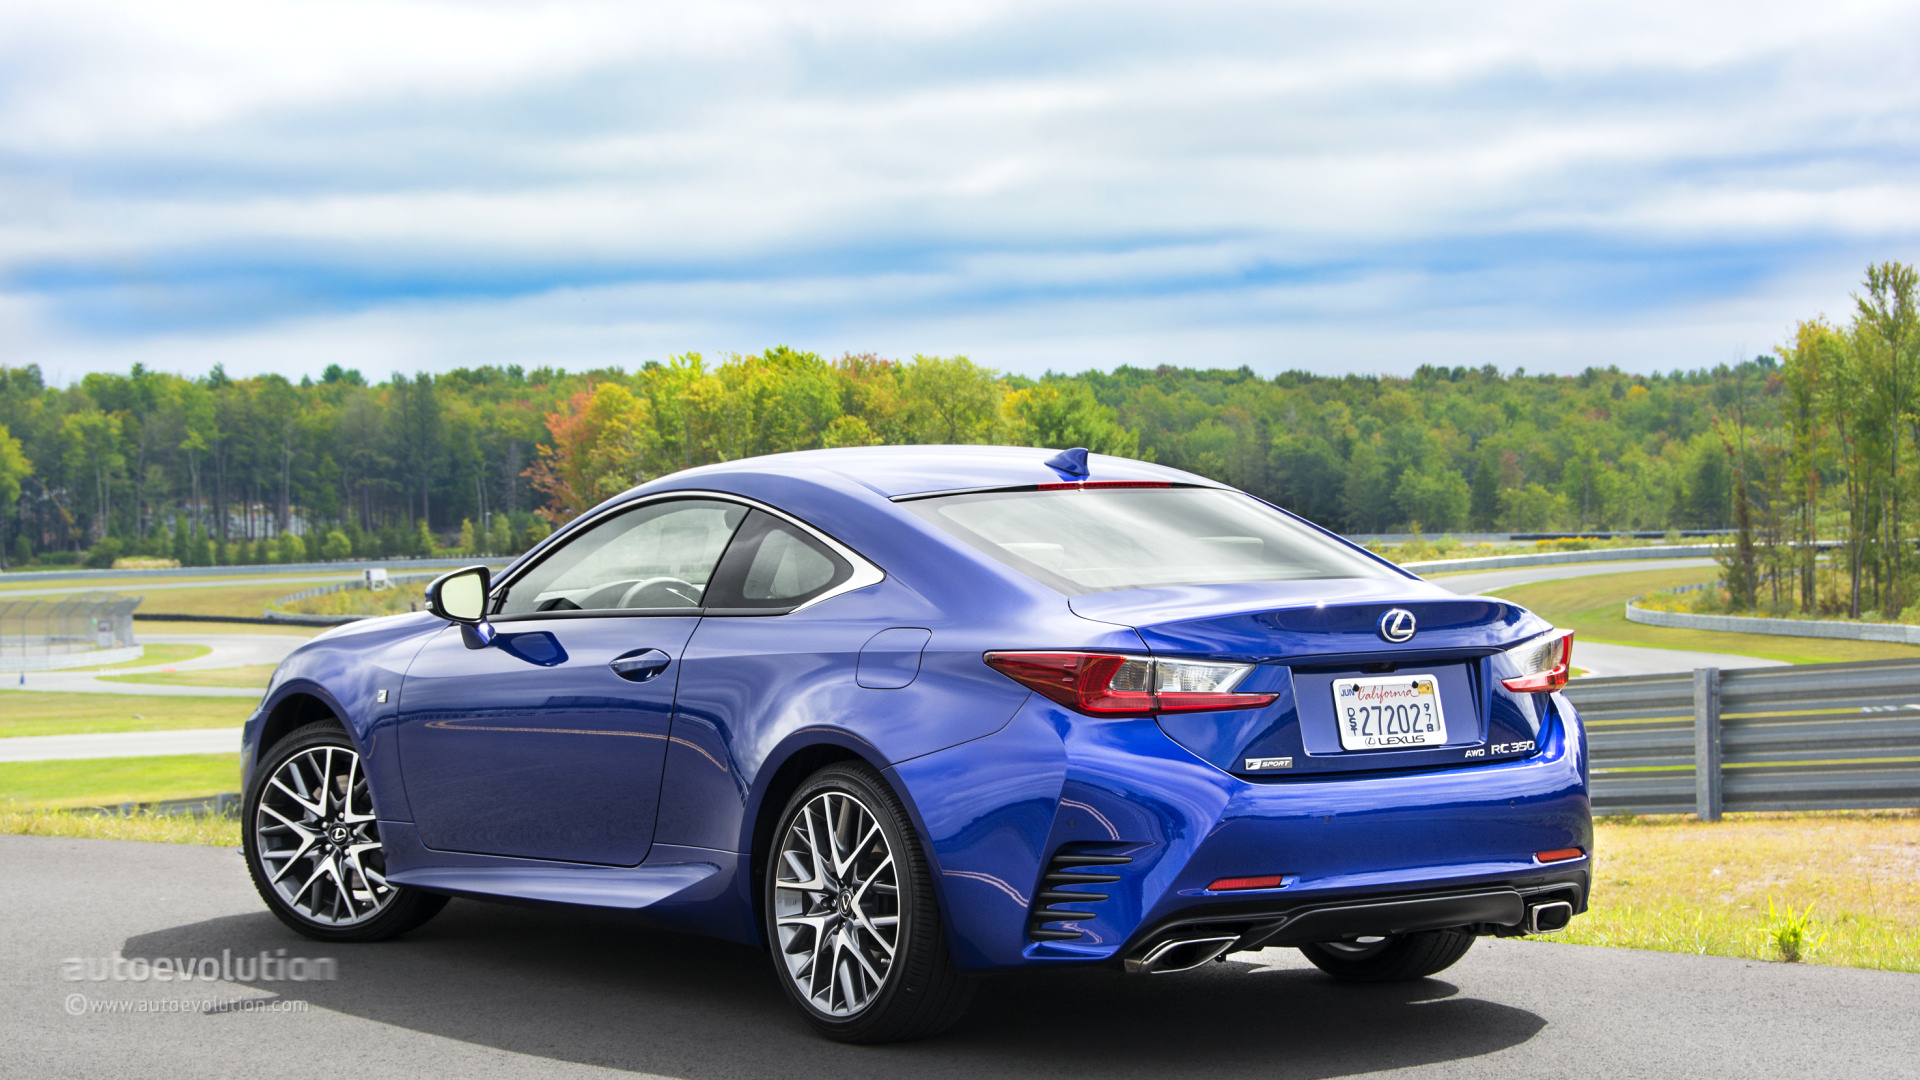 https://s1.cdn.autoevolution.com/images/news/2015-lexus-rc-rc-f-tested-86800_1.jpg